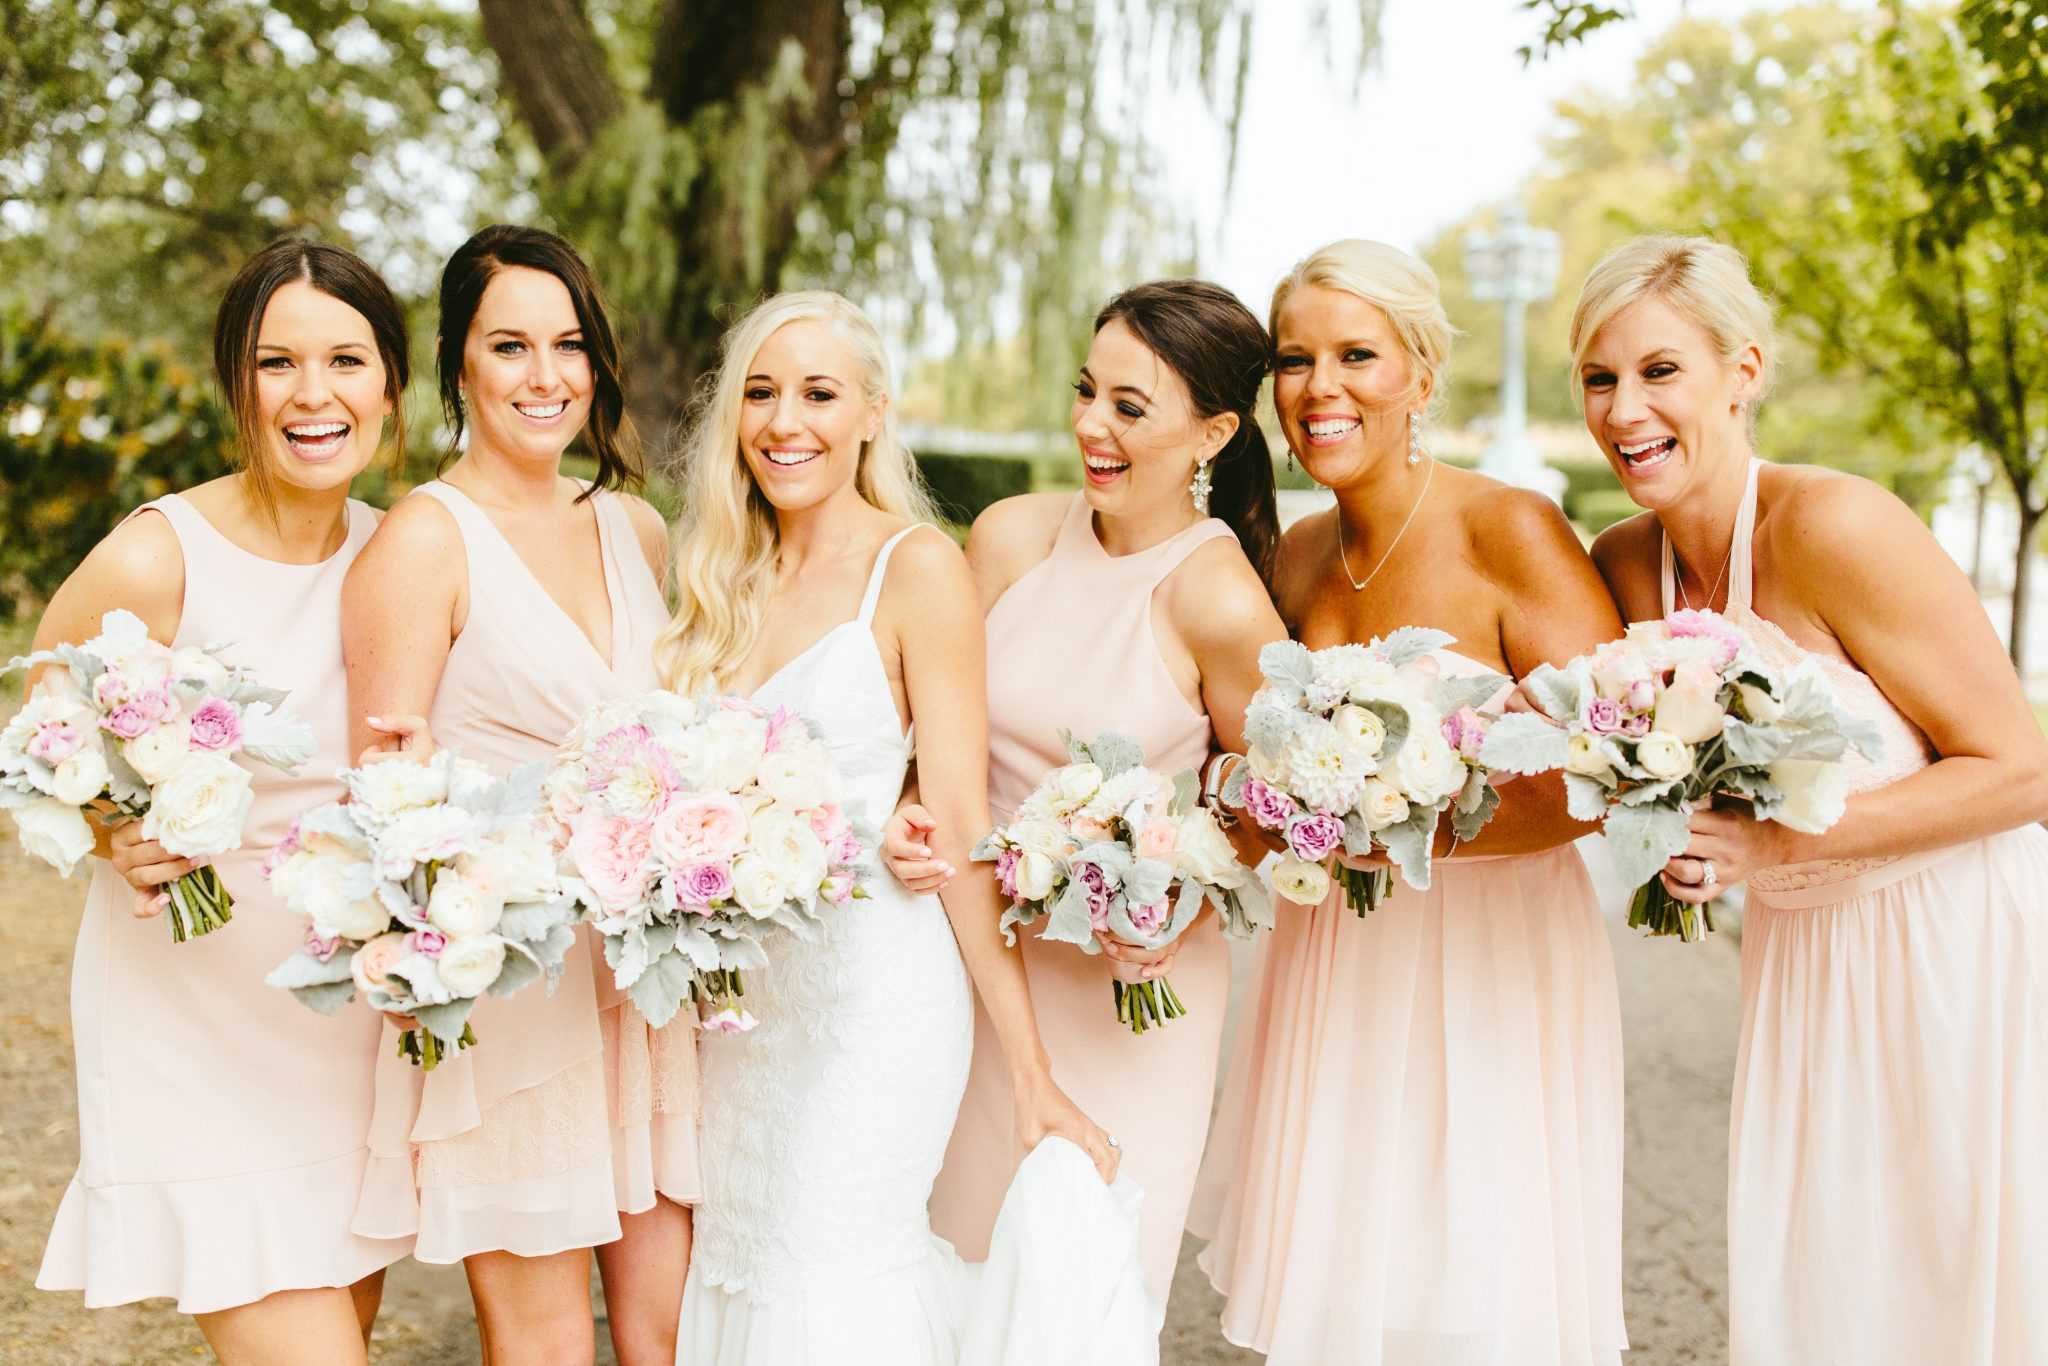 blush bridesmaid dresses, knee length bridesmaids dresses, pastel wedding colors, pastel wedding theme, pastel bouquet, blush wedding flowers, unique bridal party photos, Brooklyn wedding photography, Brooklyn wedding, Philadelphia wedding photographer, Philadelphia wedding, Brooklyn new york photographer, unique wedding inspiration, fun wedding photos, romantic wedding, destination wedding photographer